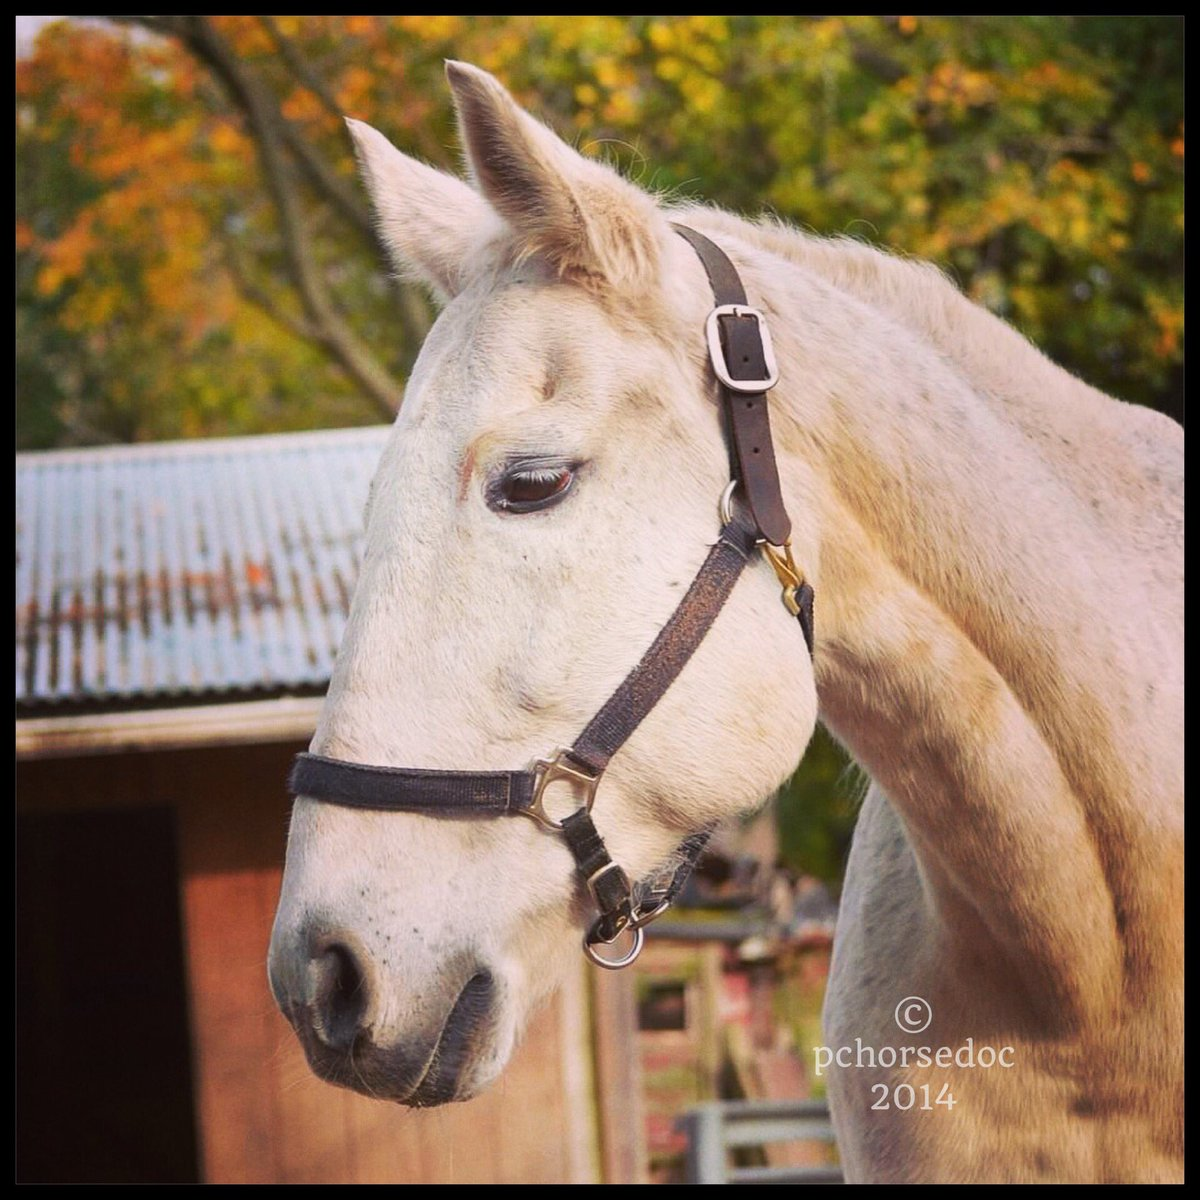 autumn #equine RiP this sweet old guy who had almost a decade of loving retirement #ottb from #OK <br>http://pic.twitter.com/B7v7gGSvmO